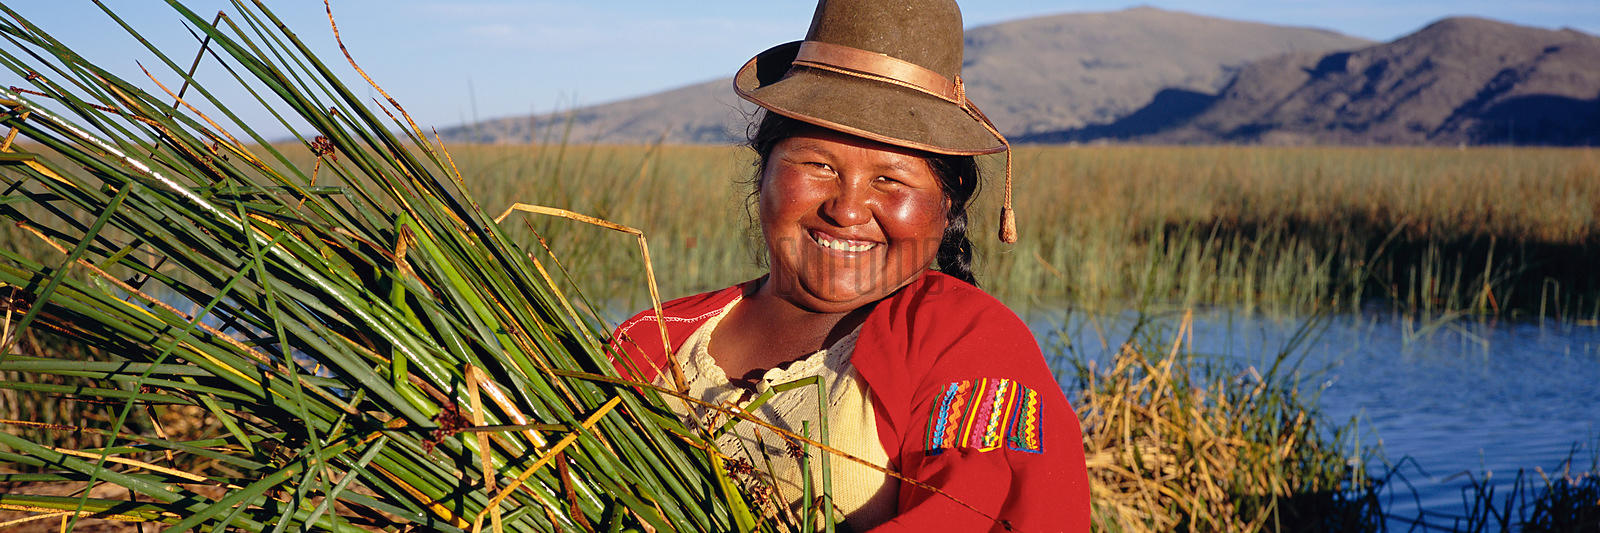 Woman Gathering Reeds at Lake Titicaca